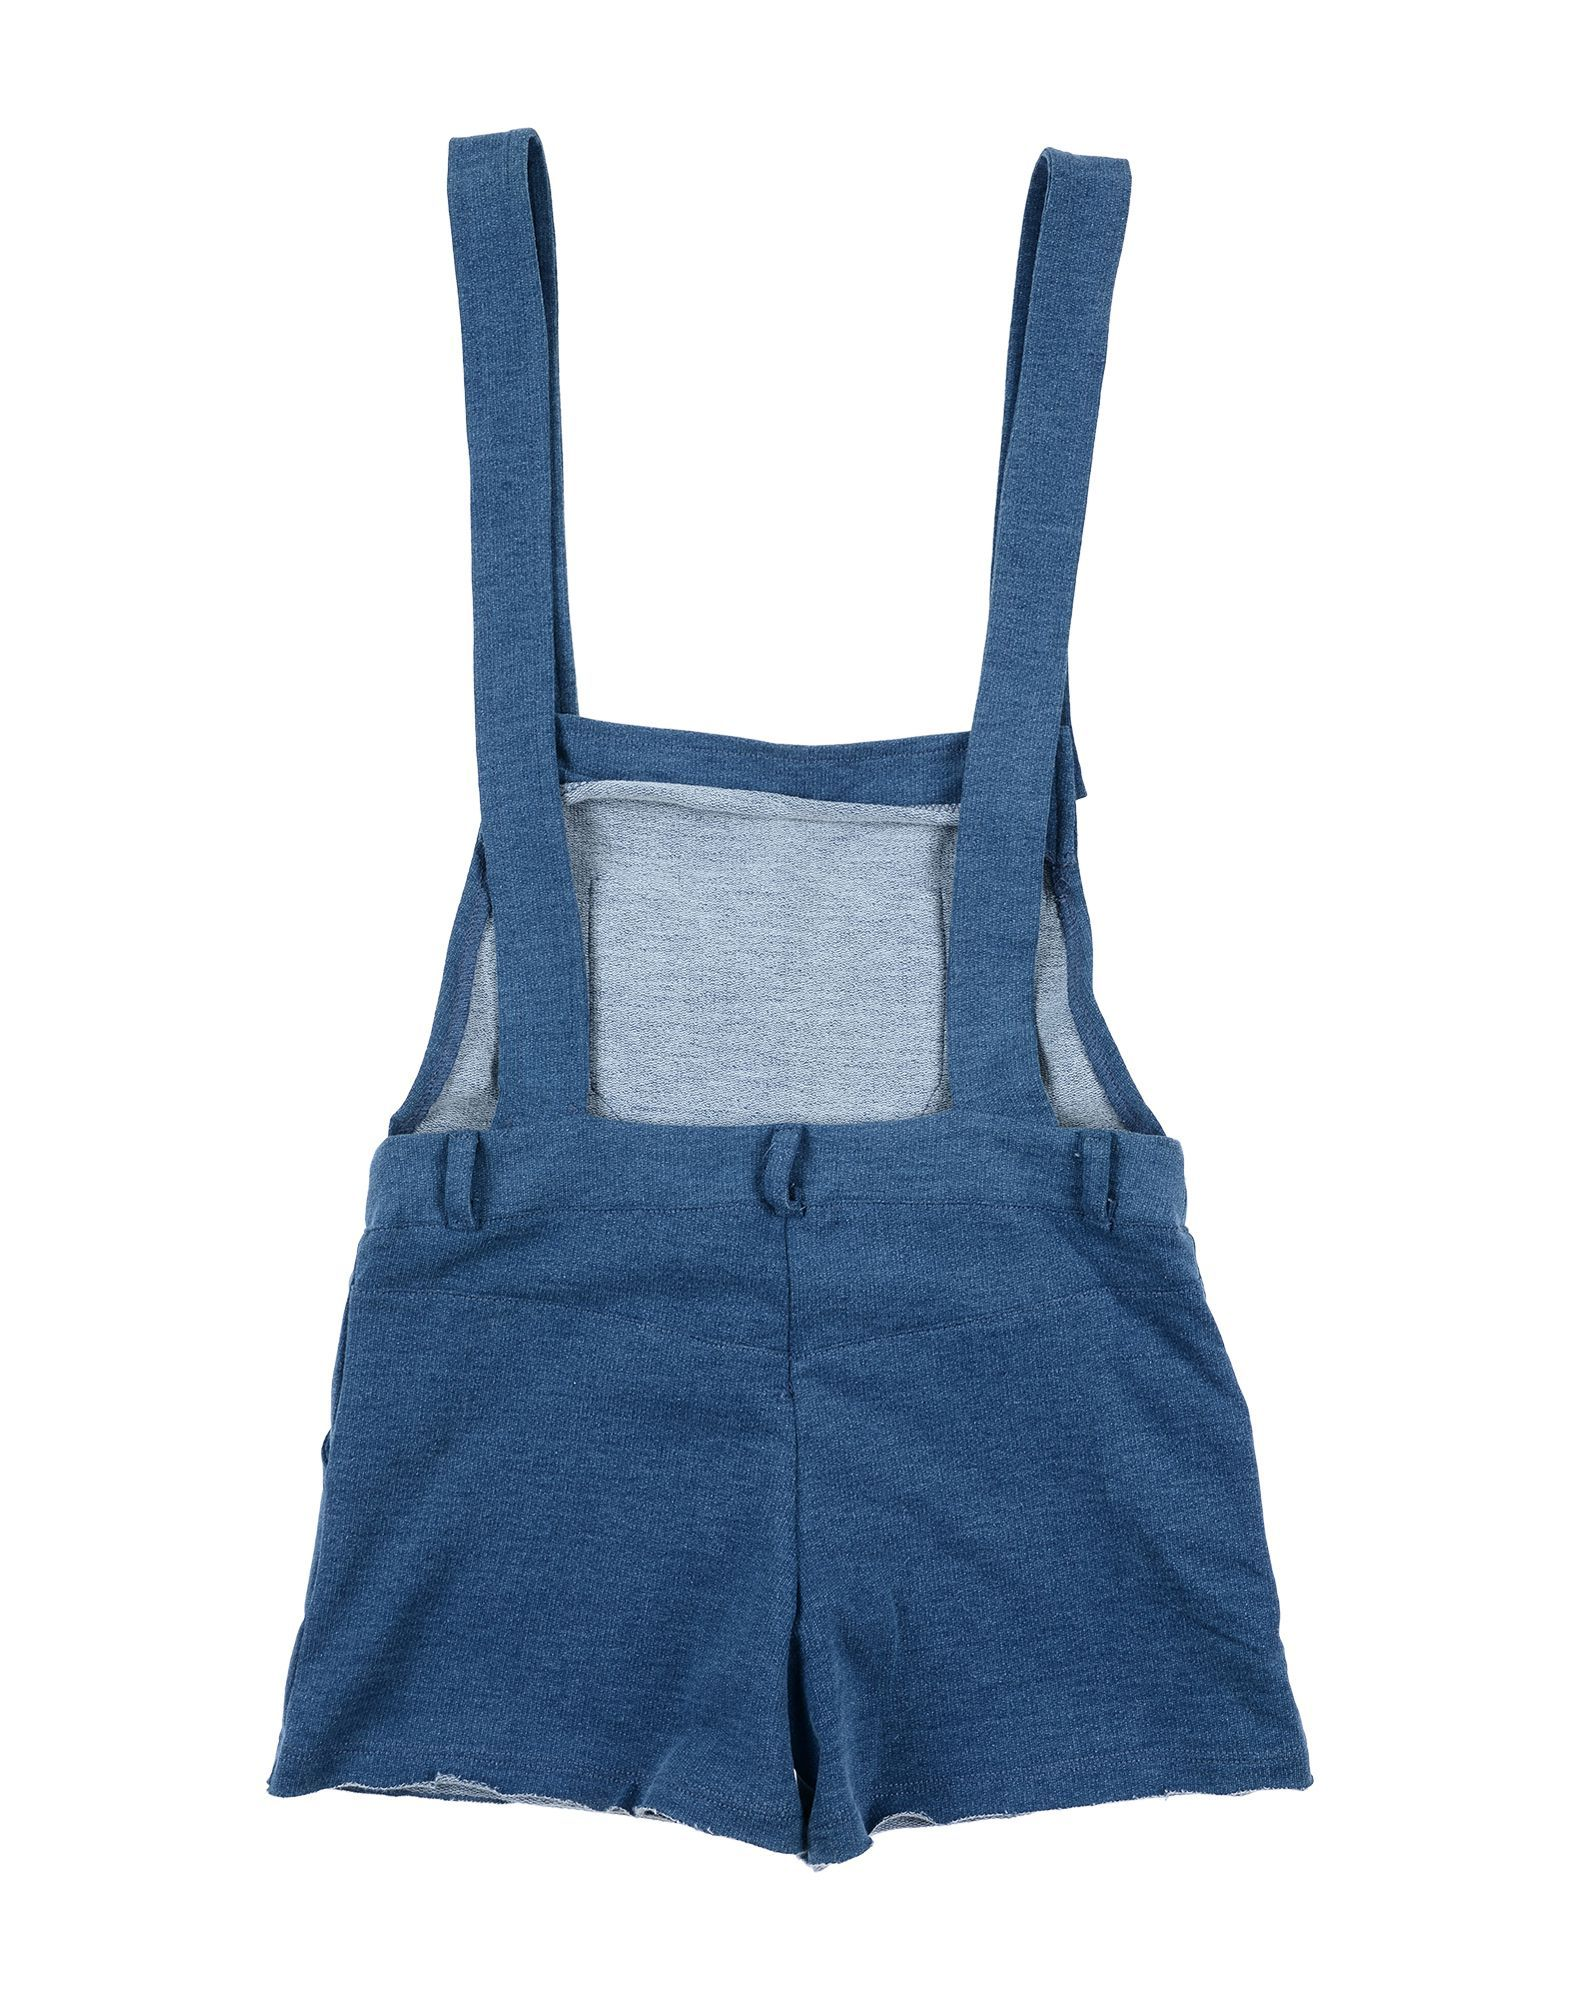 DUNGAREES Girl Kith Blue Cotton